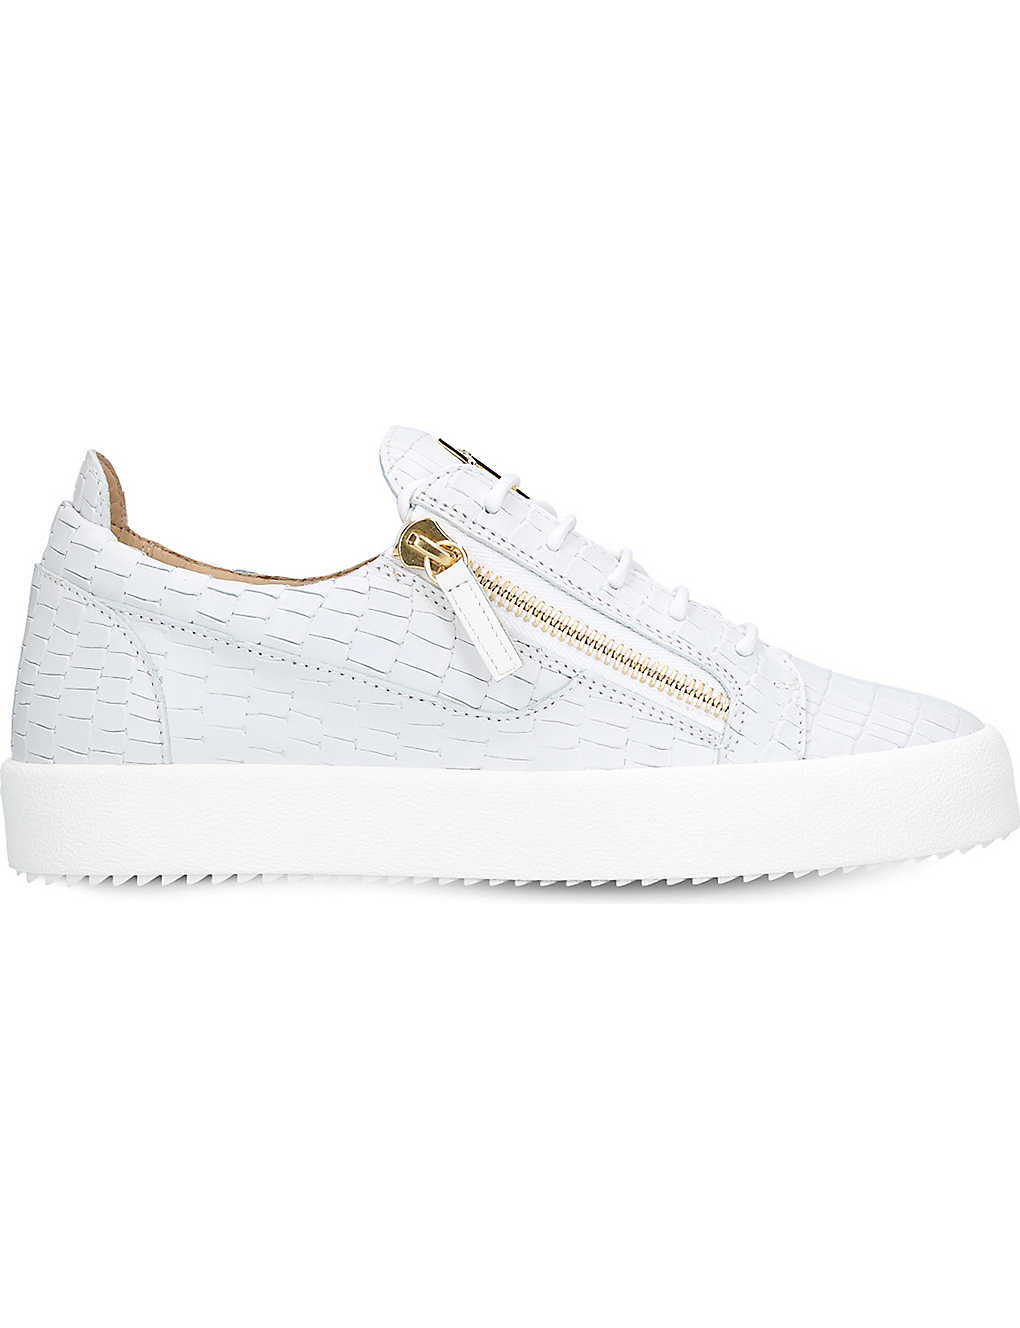 2659d164d74b2 GIUSEPPE ZANOTTI - Croc-embossed low-top leather trainers ...